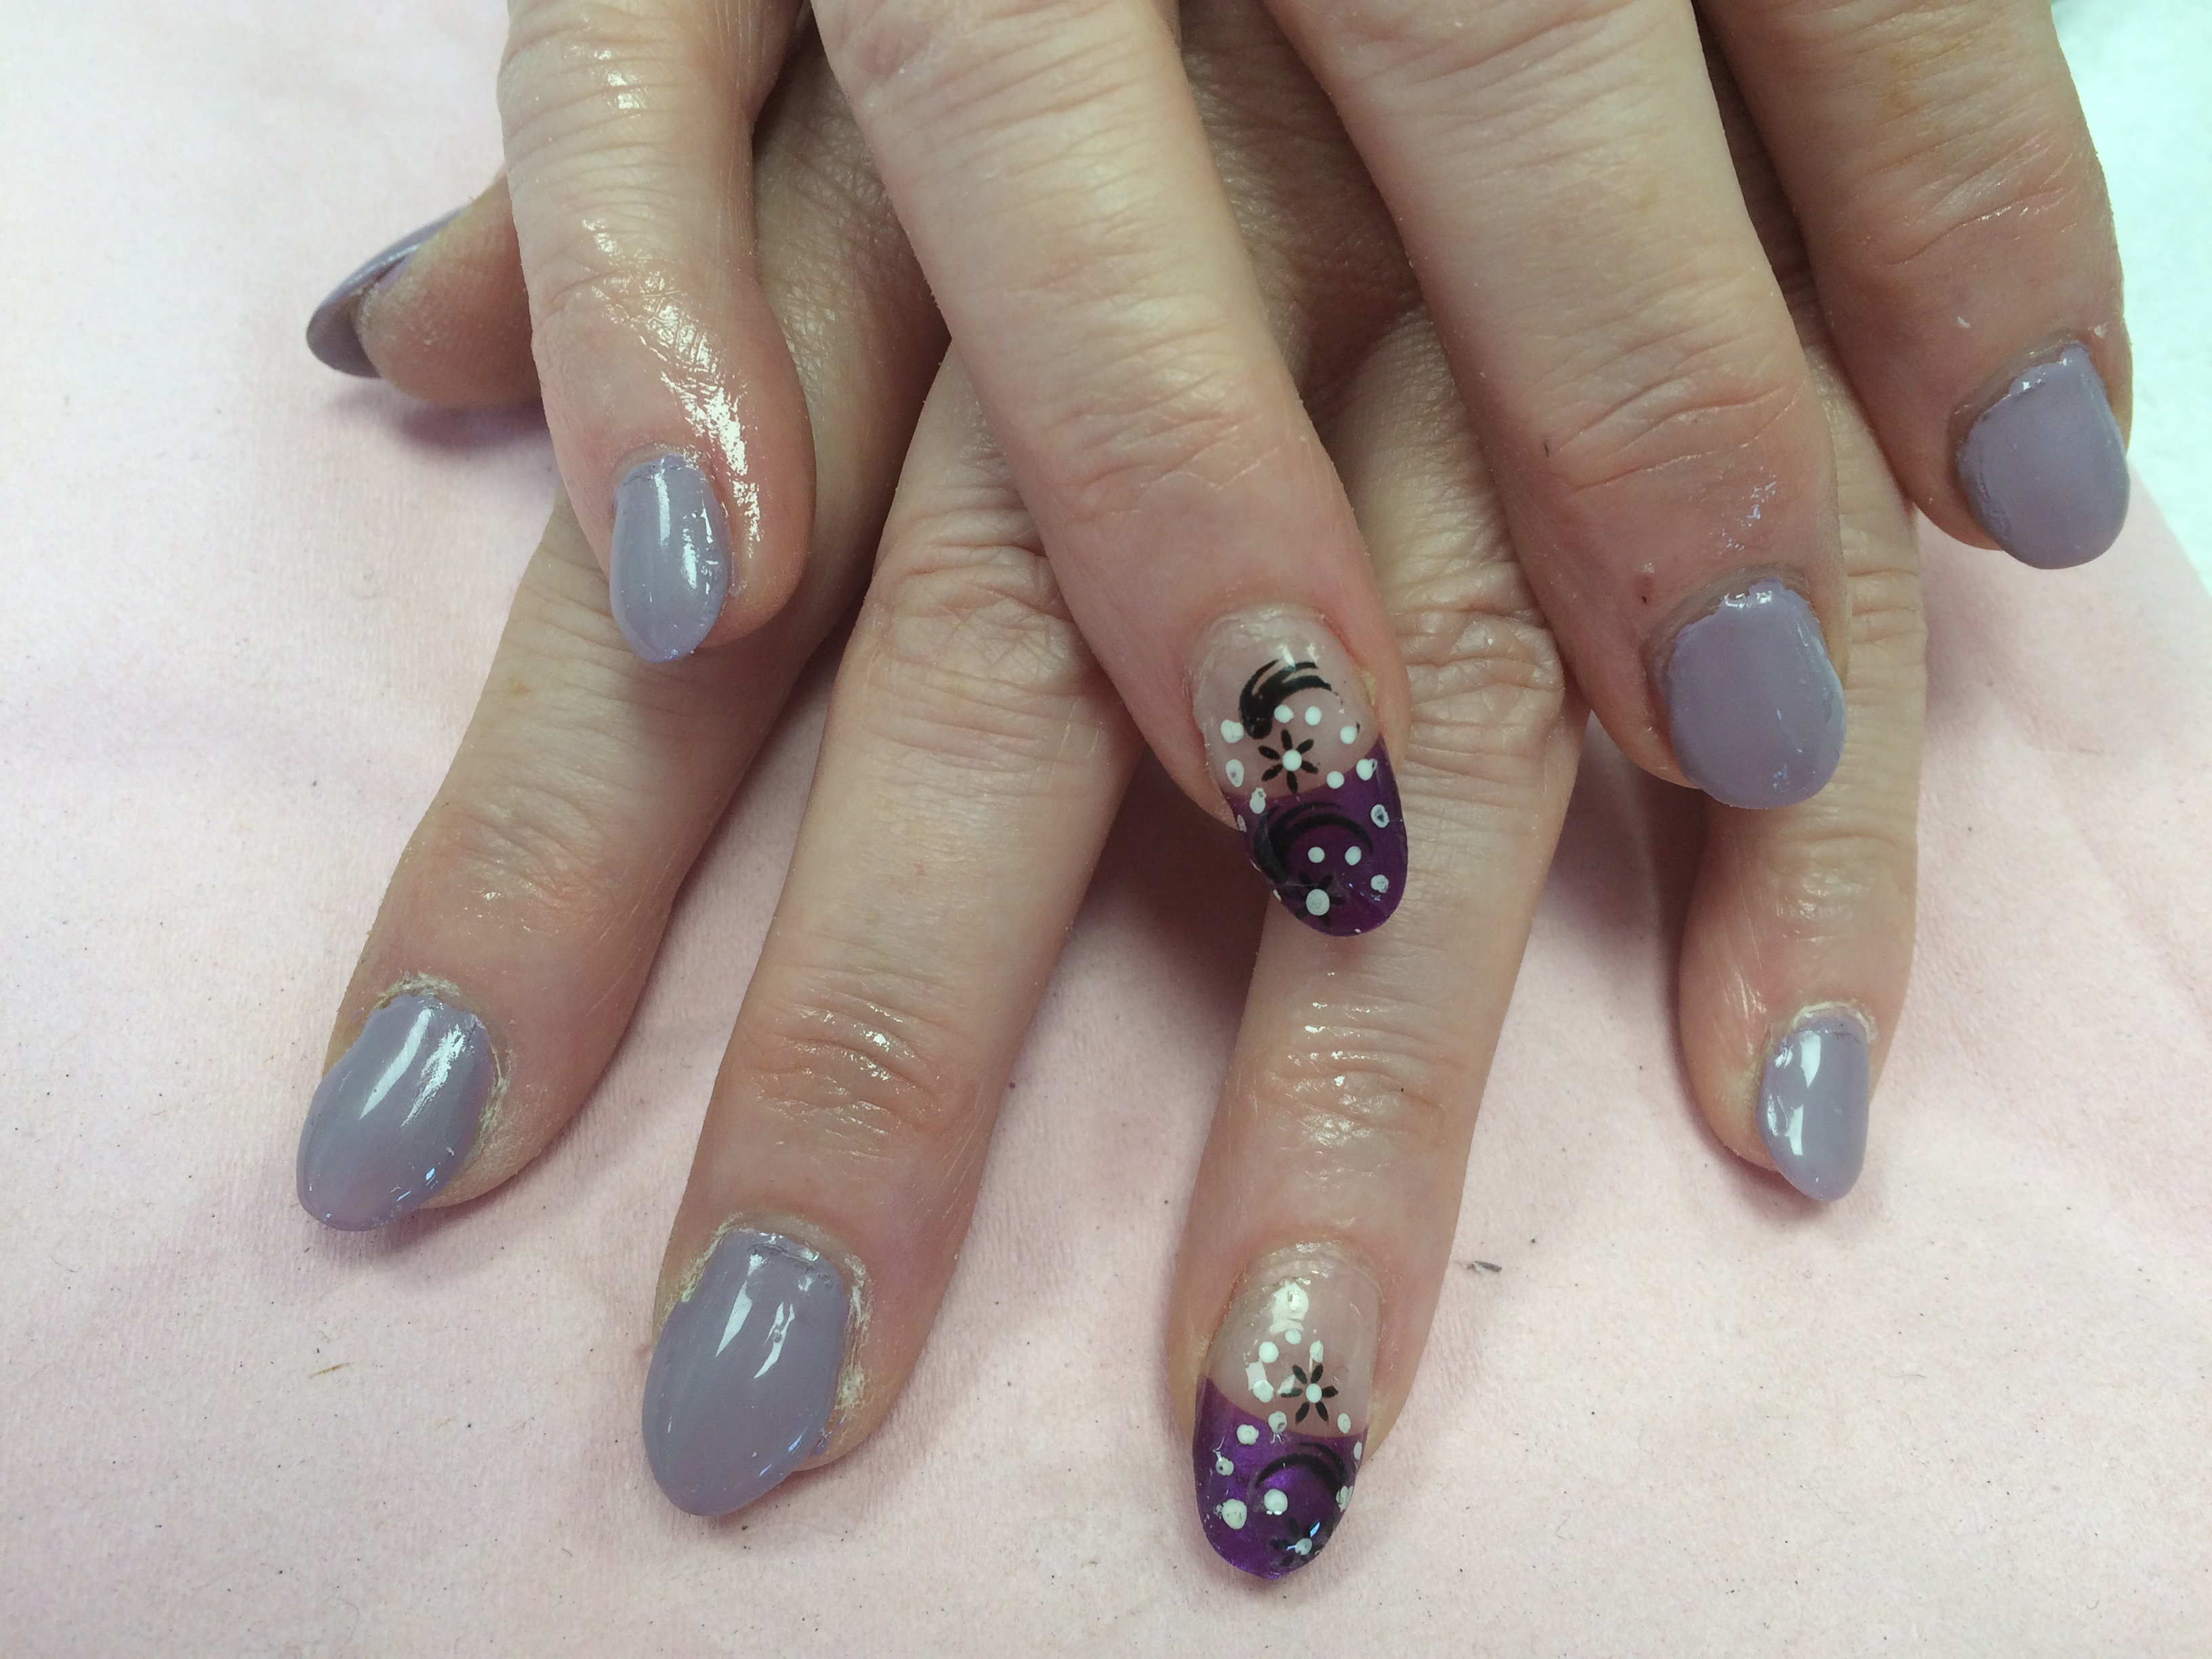 Can You Have Gels Applied To Your Natural Nail